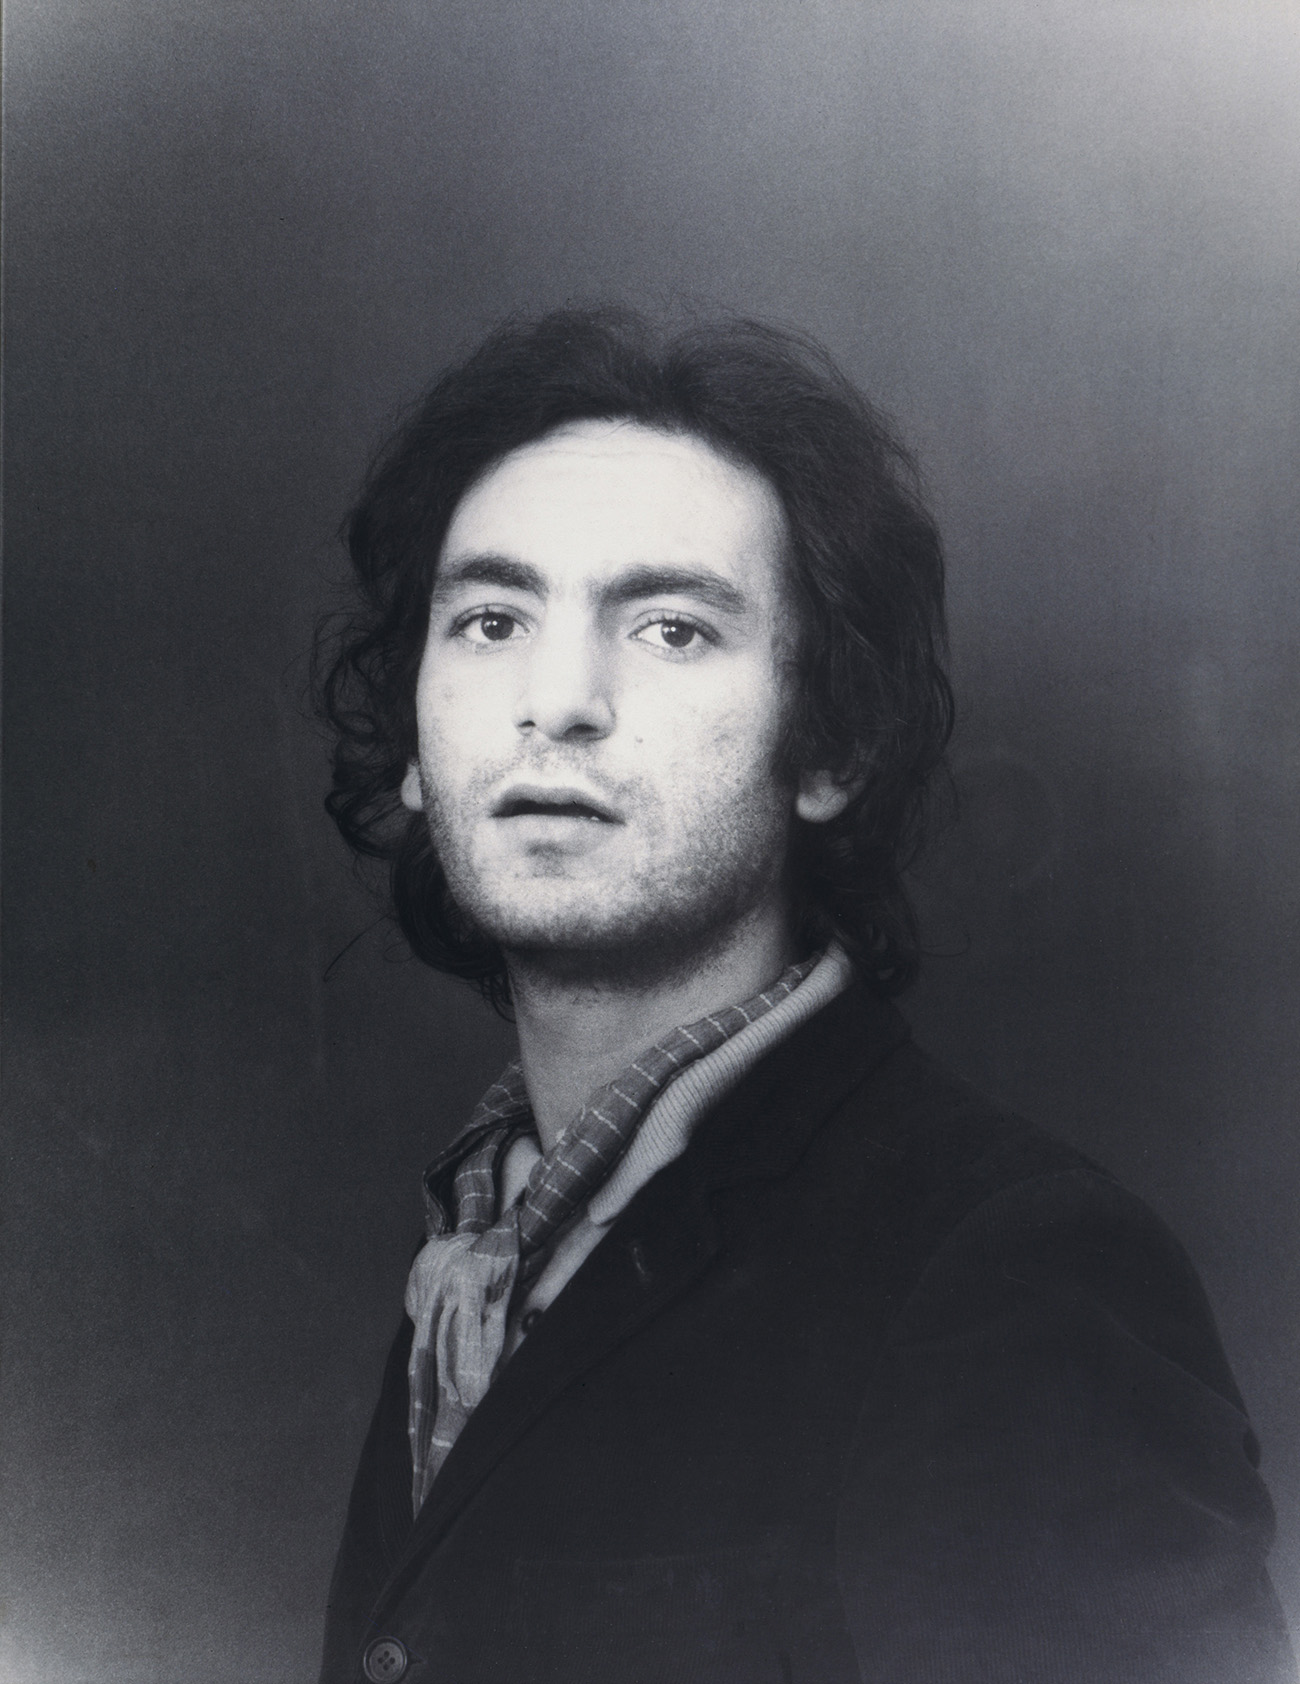 Salvo, Selfportrait as Raffaello, 1970, Paul Maenz, Berlin Collection (Foto: Archivio Salvo, Torino)